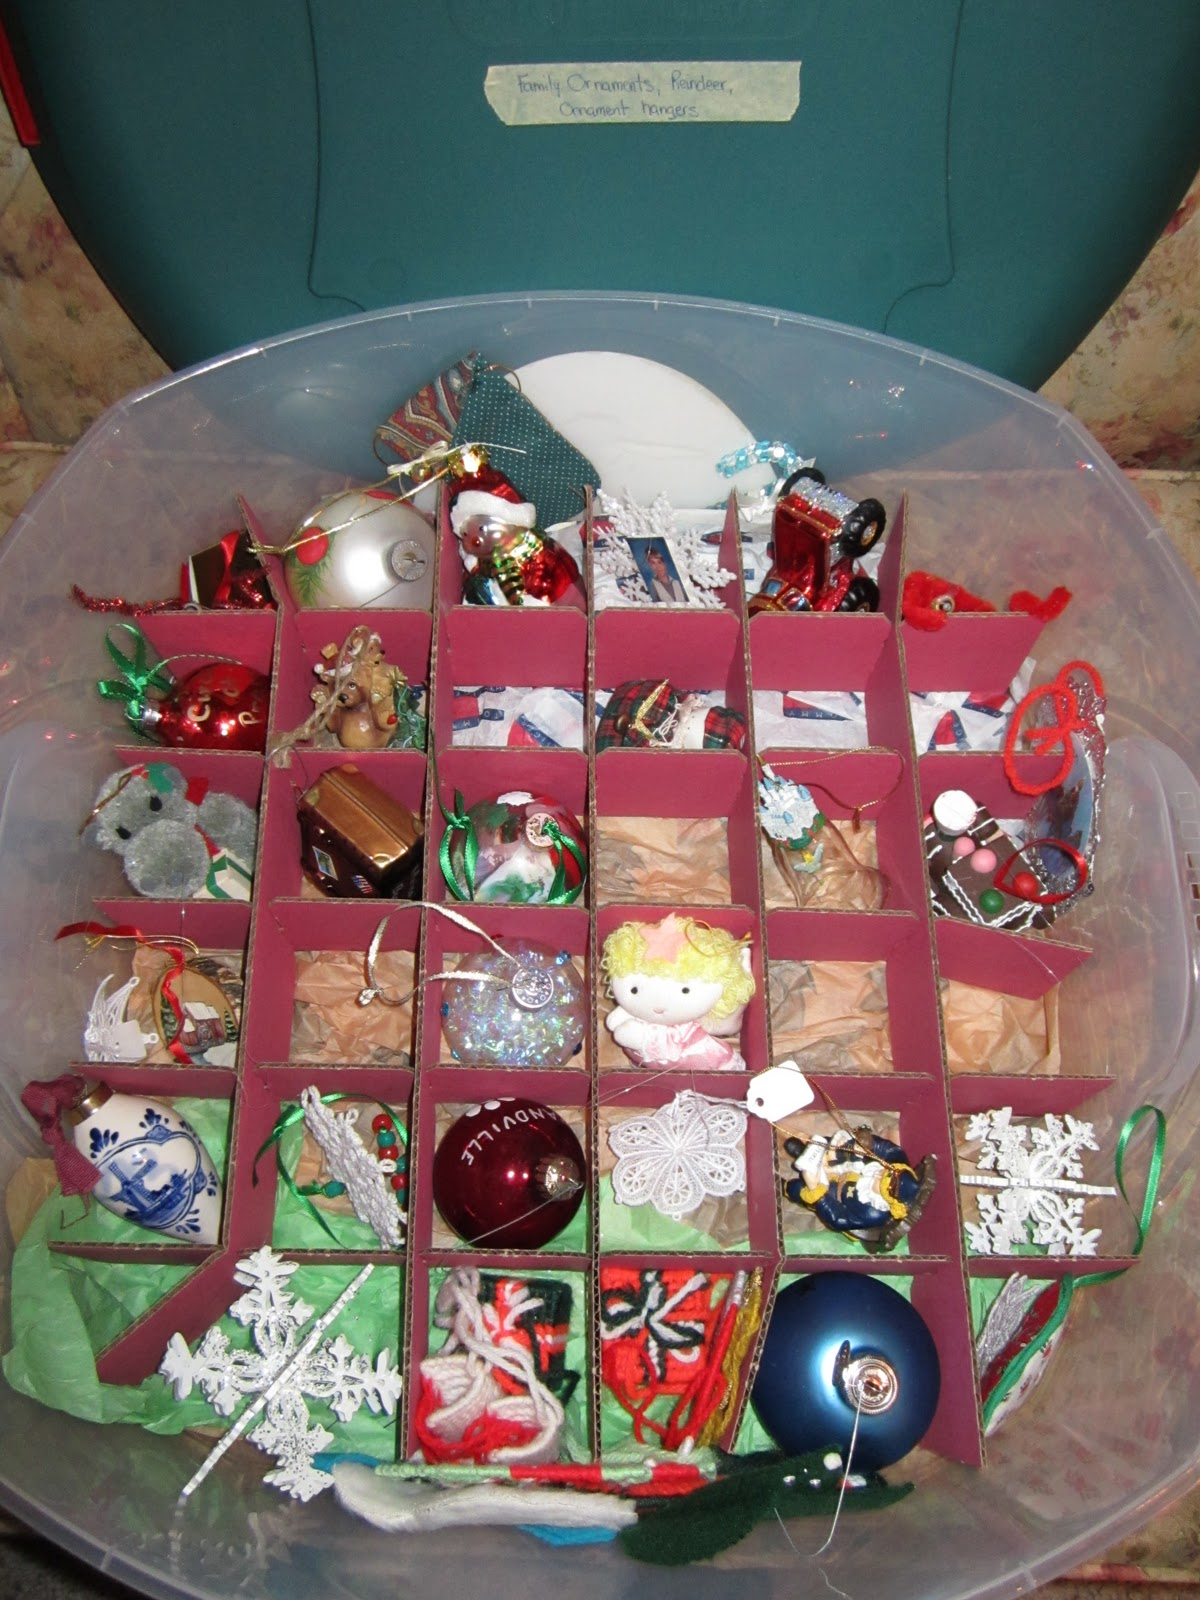 Individual ornament boxes - This Container Holds Two Layers Of Ornaments With A Large Piece Of Cardboard In Between I Only Use The Dividers For The Bottom Layer Since I Have A